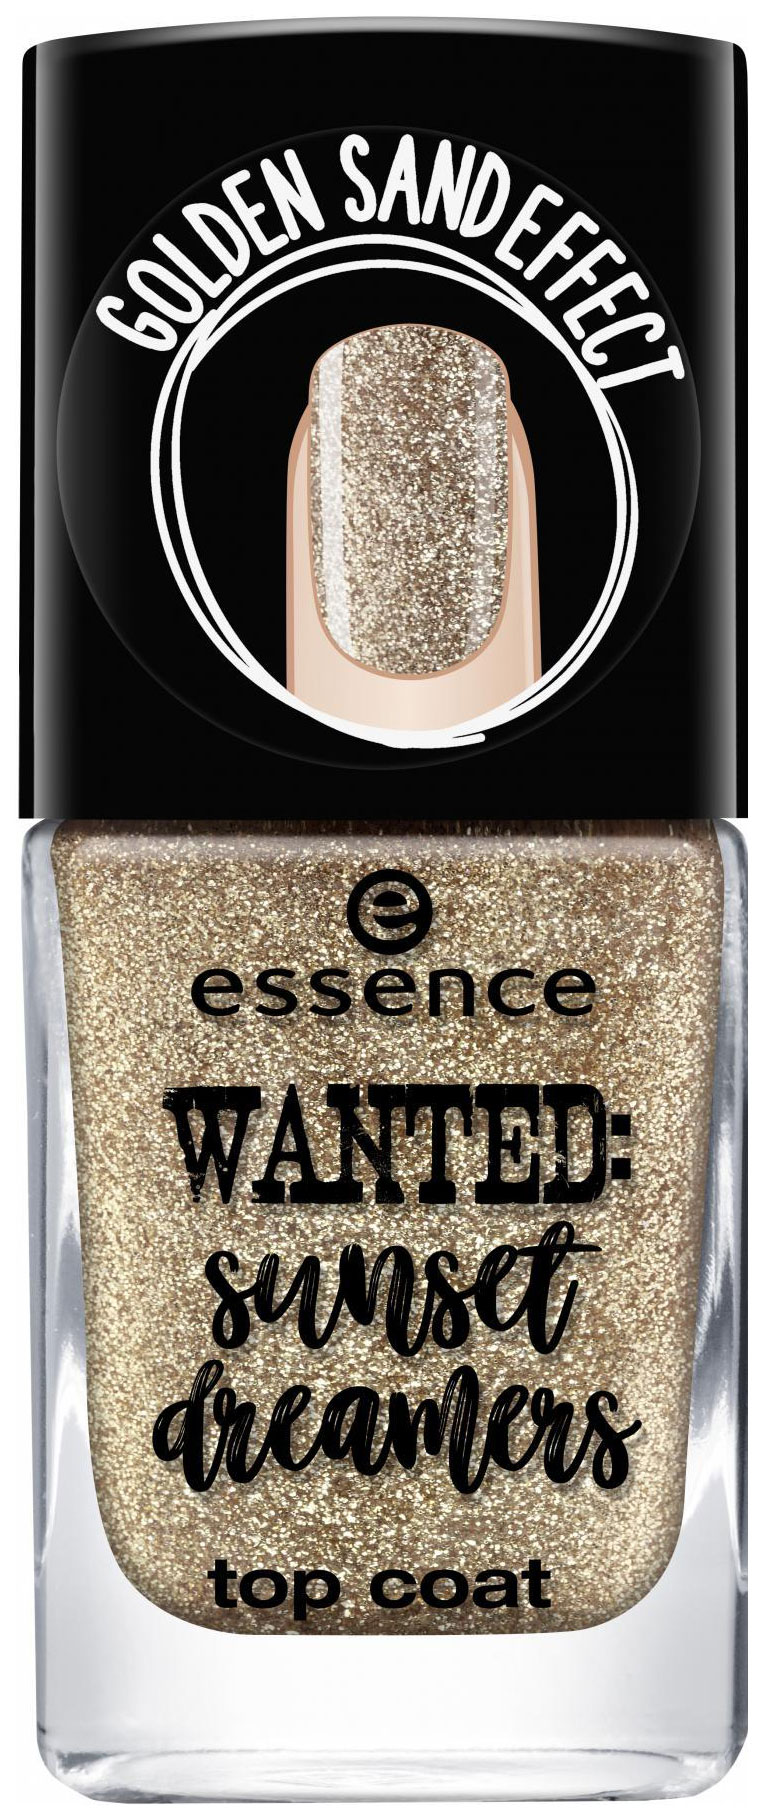 Топ Essence Wanted Sunset Dreamers 01 Golden Sand